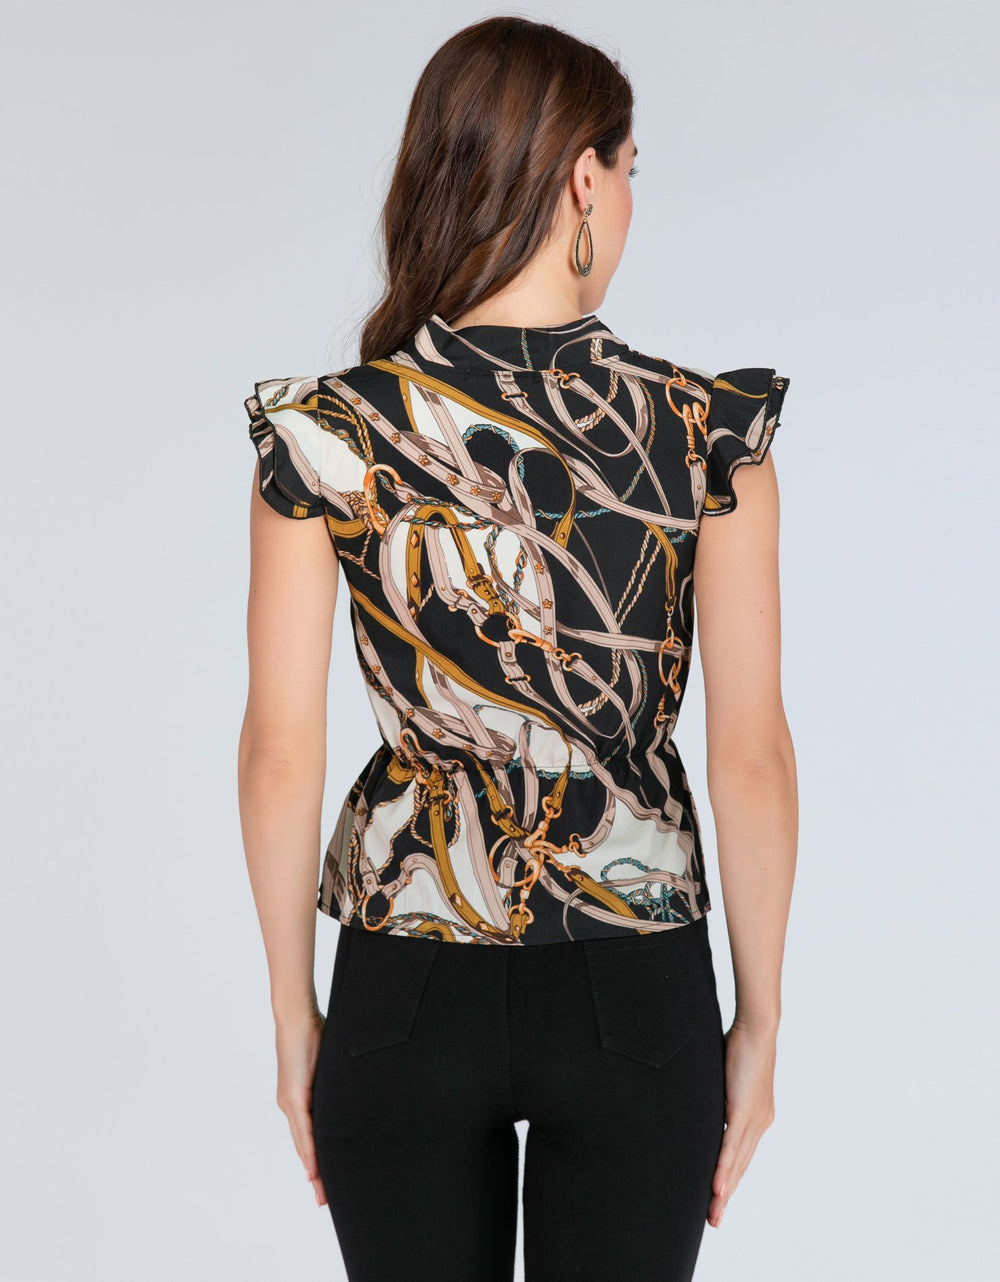 Multi-Color Artistic Top